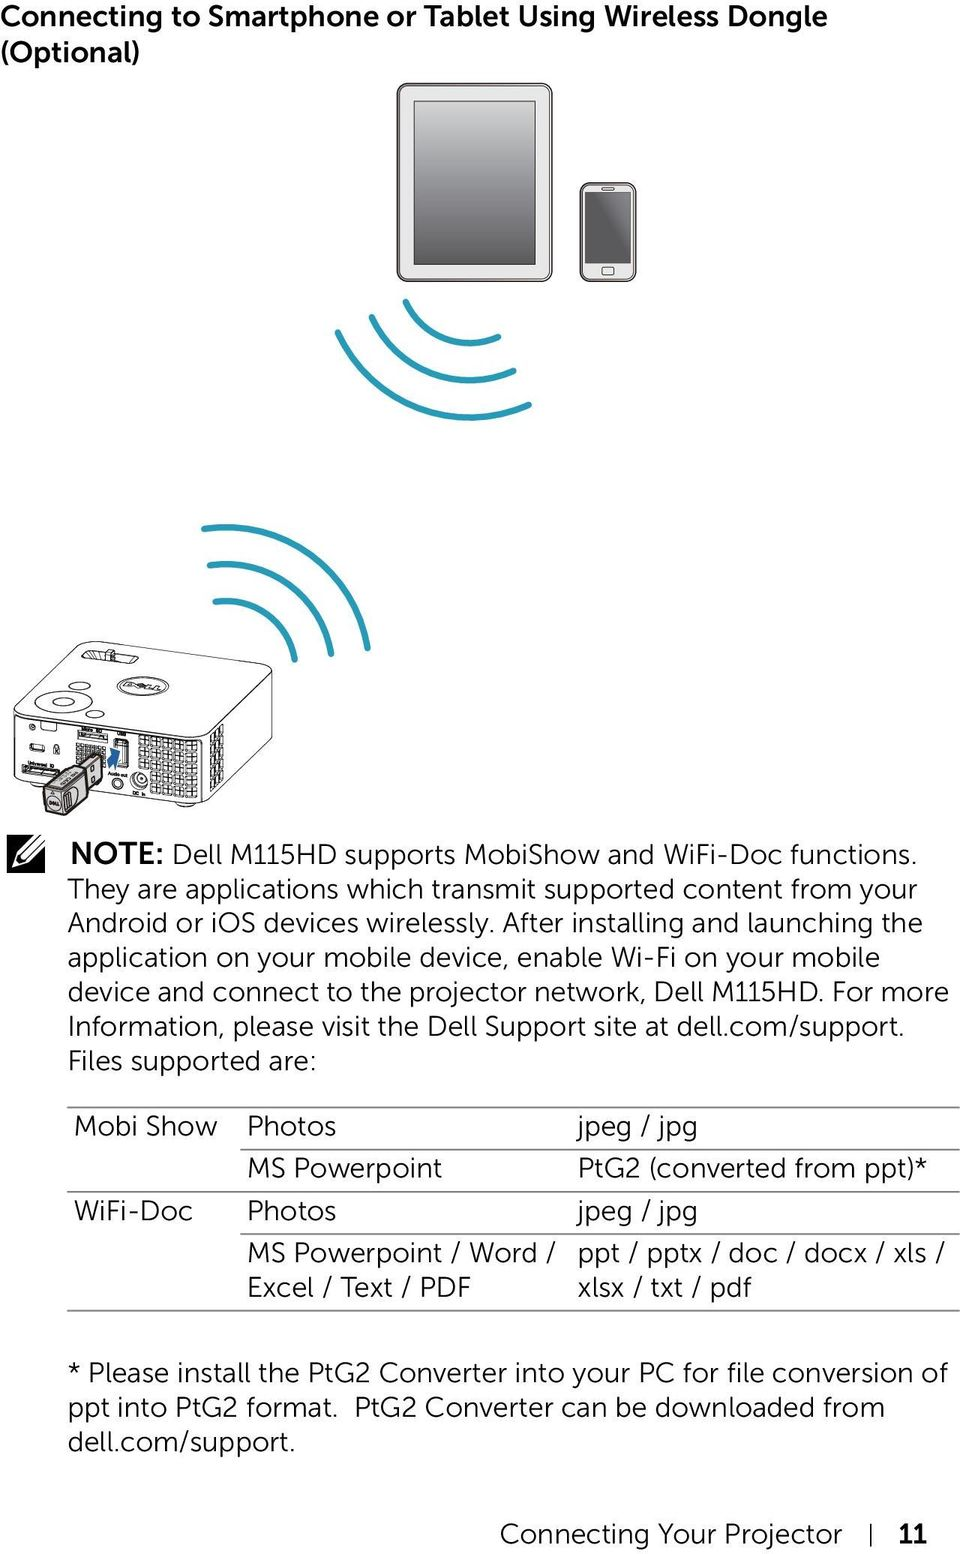 After installing and launching the application on your mobile device, enable Wi-Fi on your mobile device and connect to the projector network, Dell M115HD.